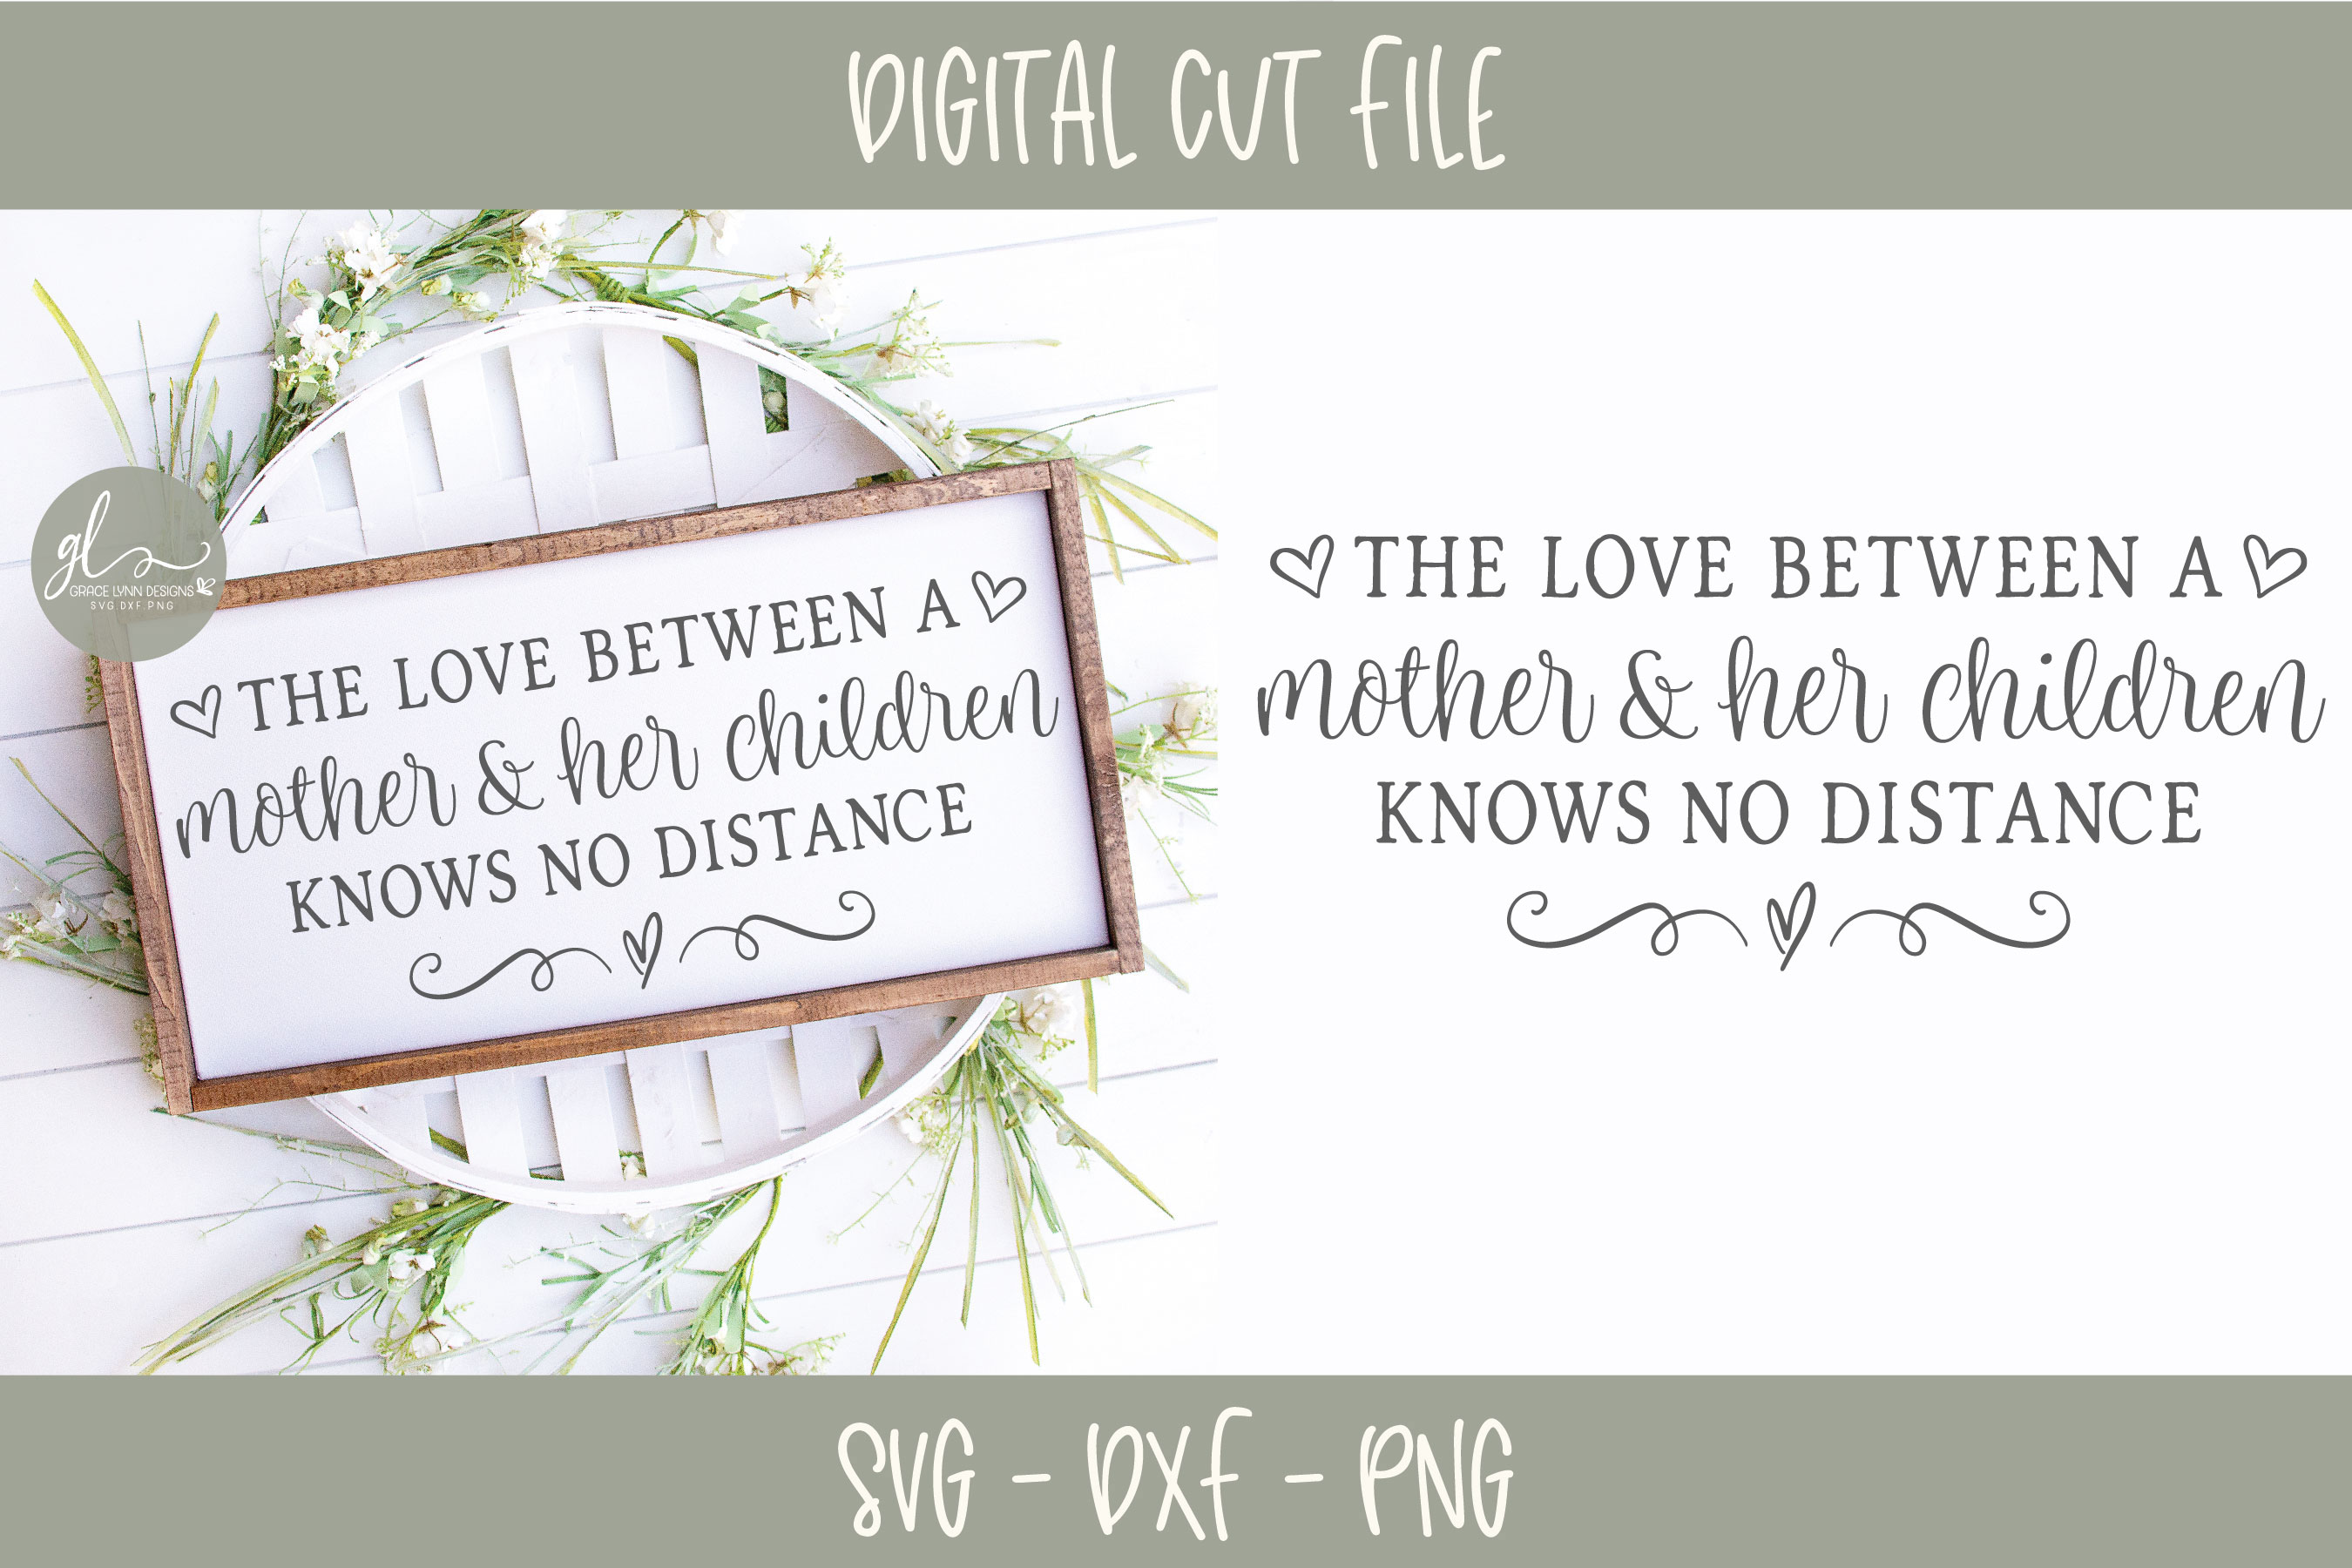 The Love Between A Mother And Her Children - SVG Cut File example image 1